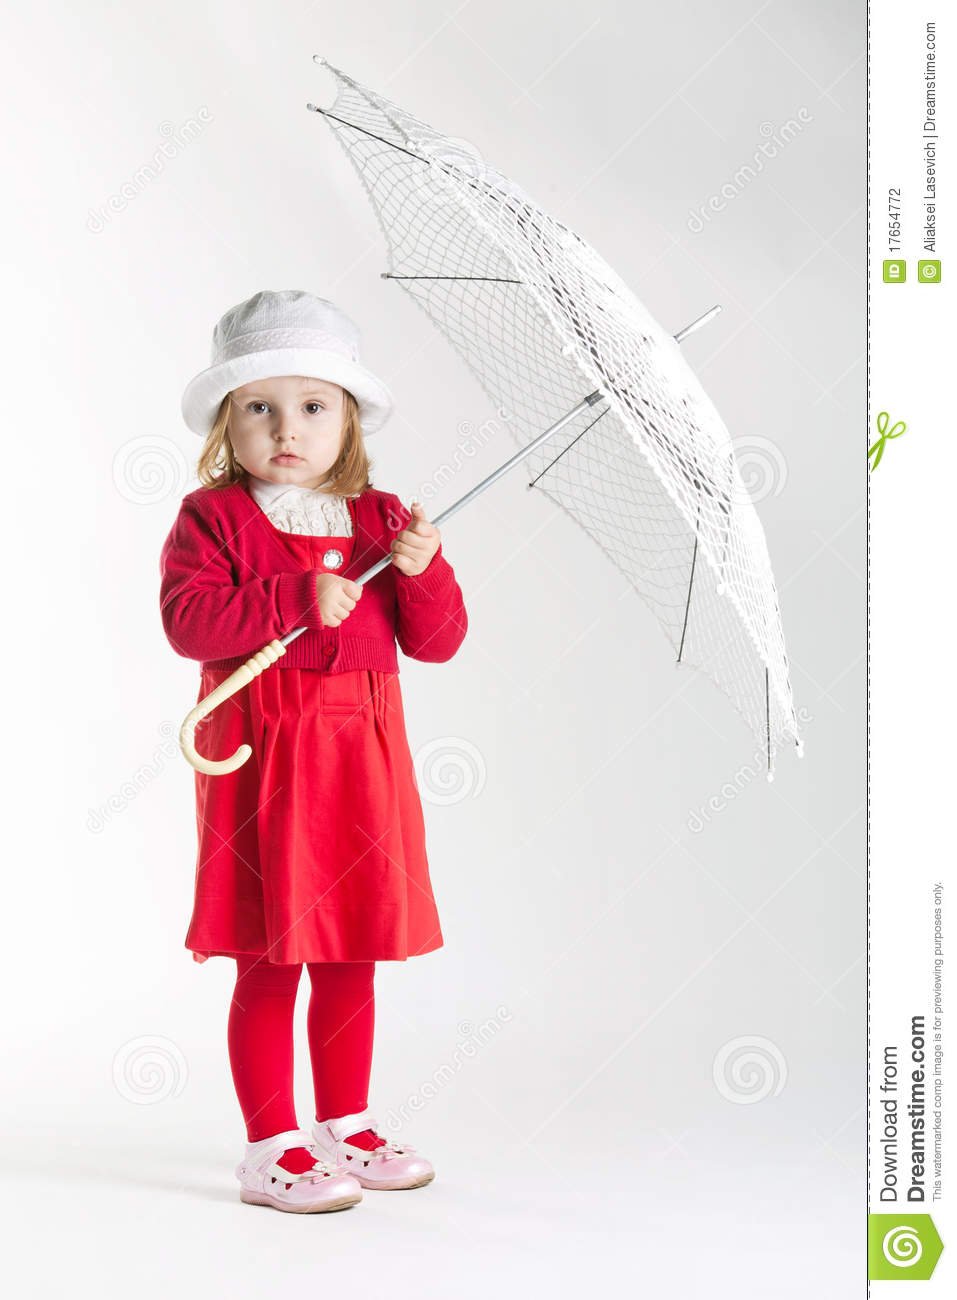 Little Girl With Umbrella Stock Photography - Image: 17654772